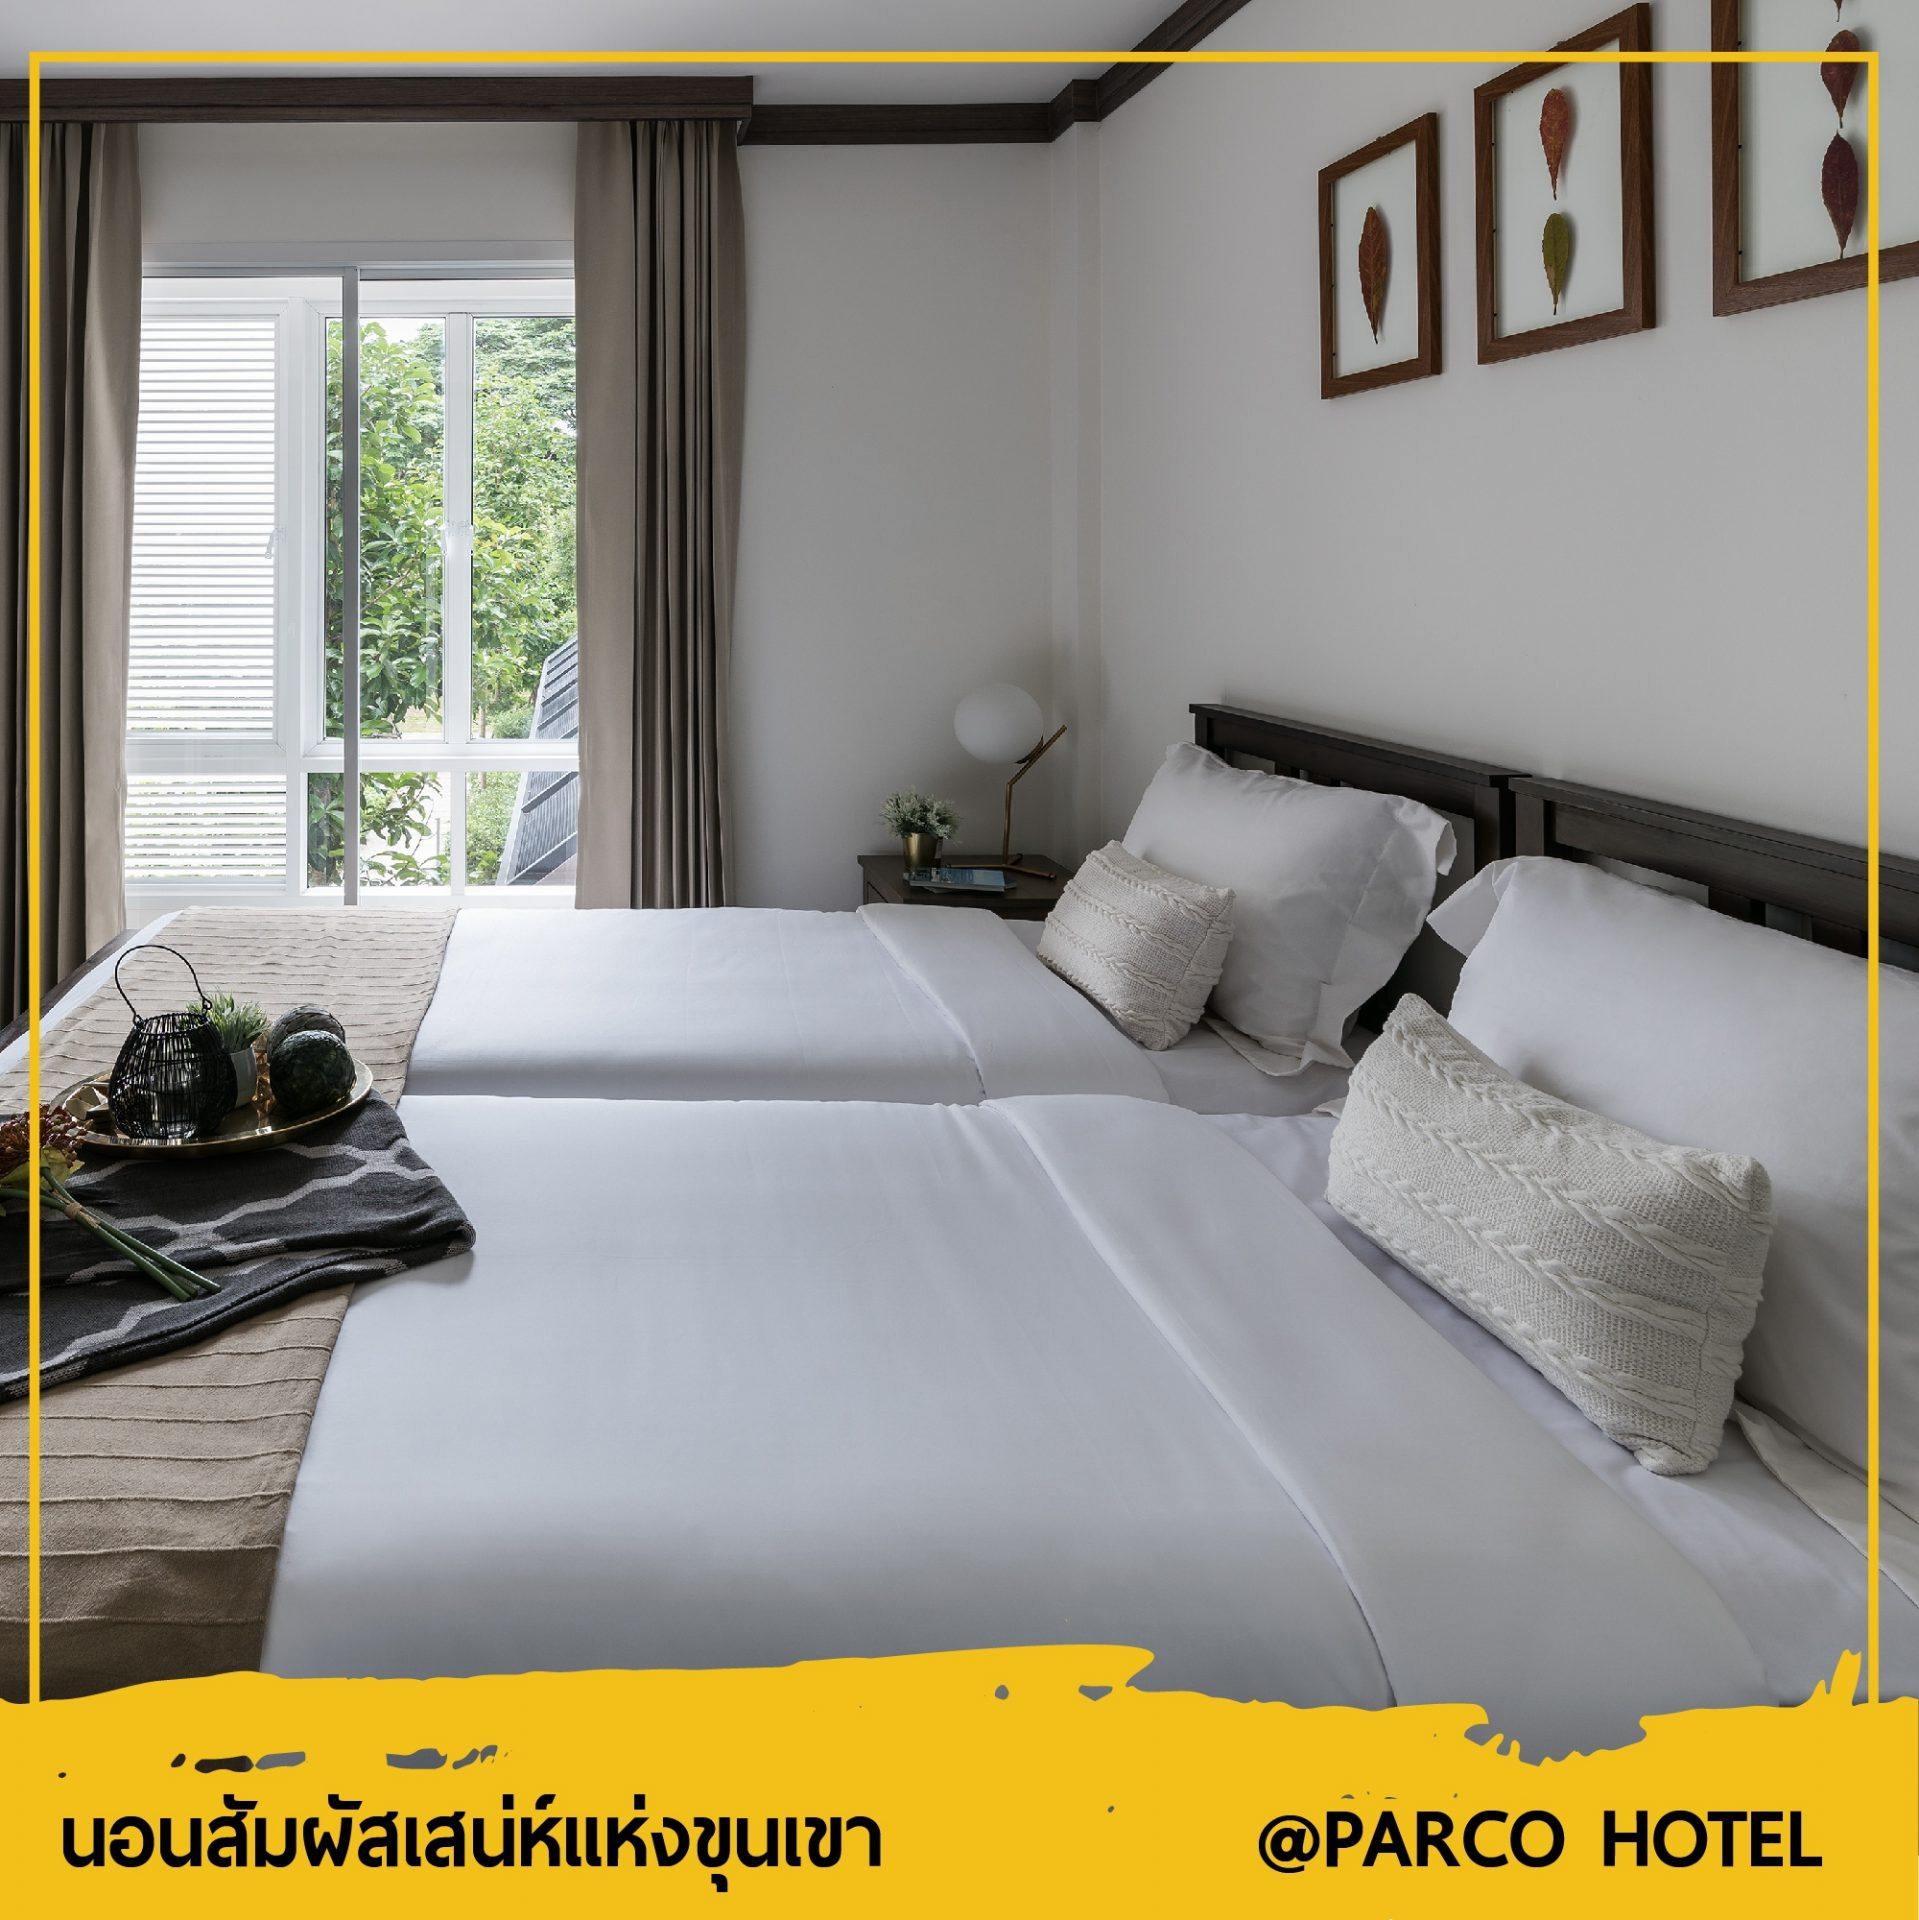 Parco hotel khaoyai_promotion_summer get away_3